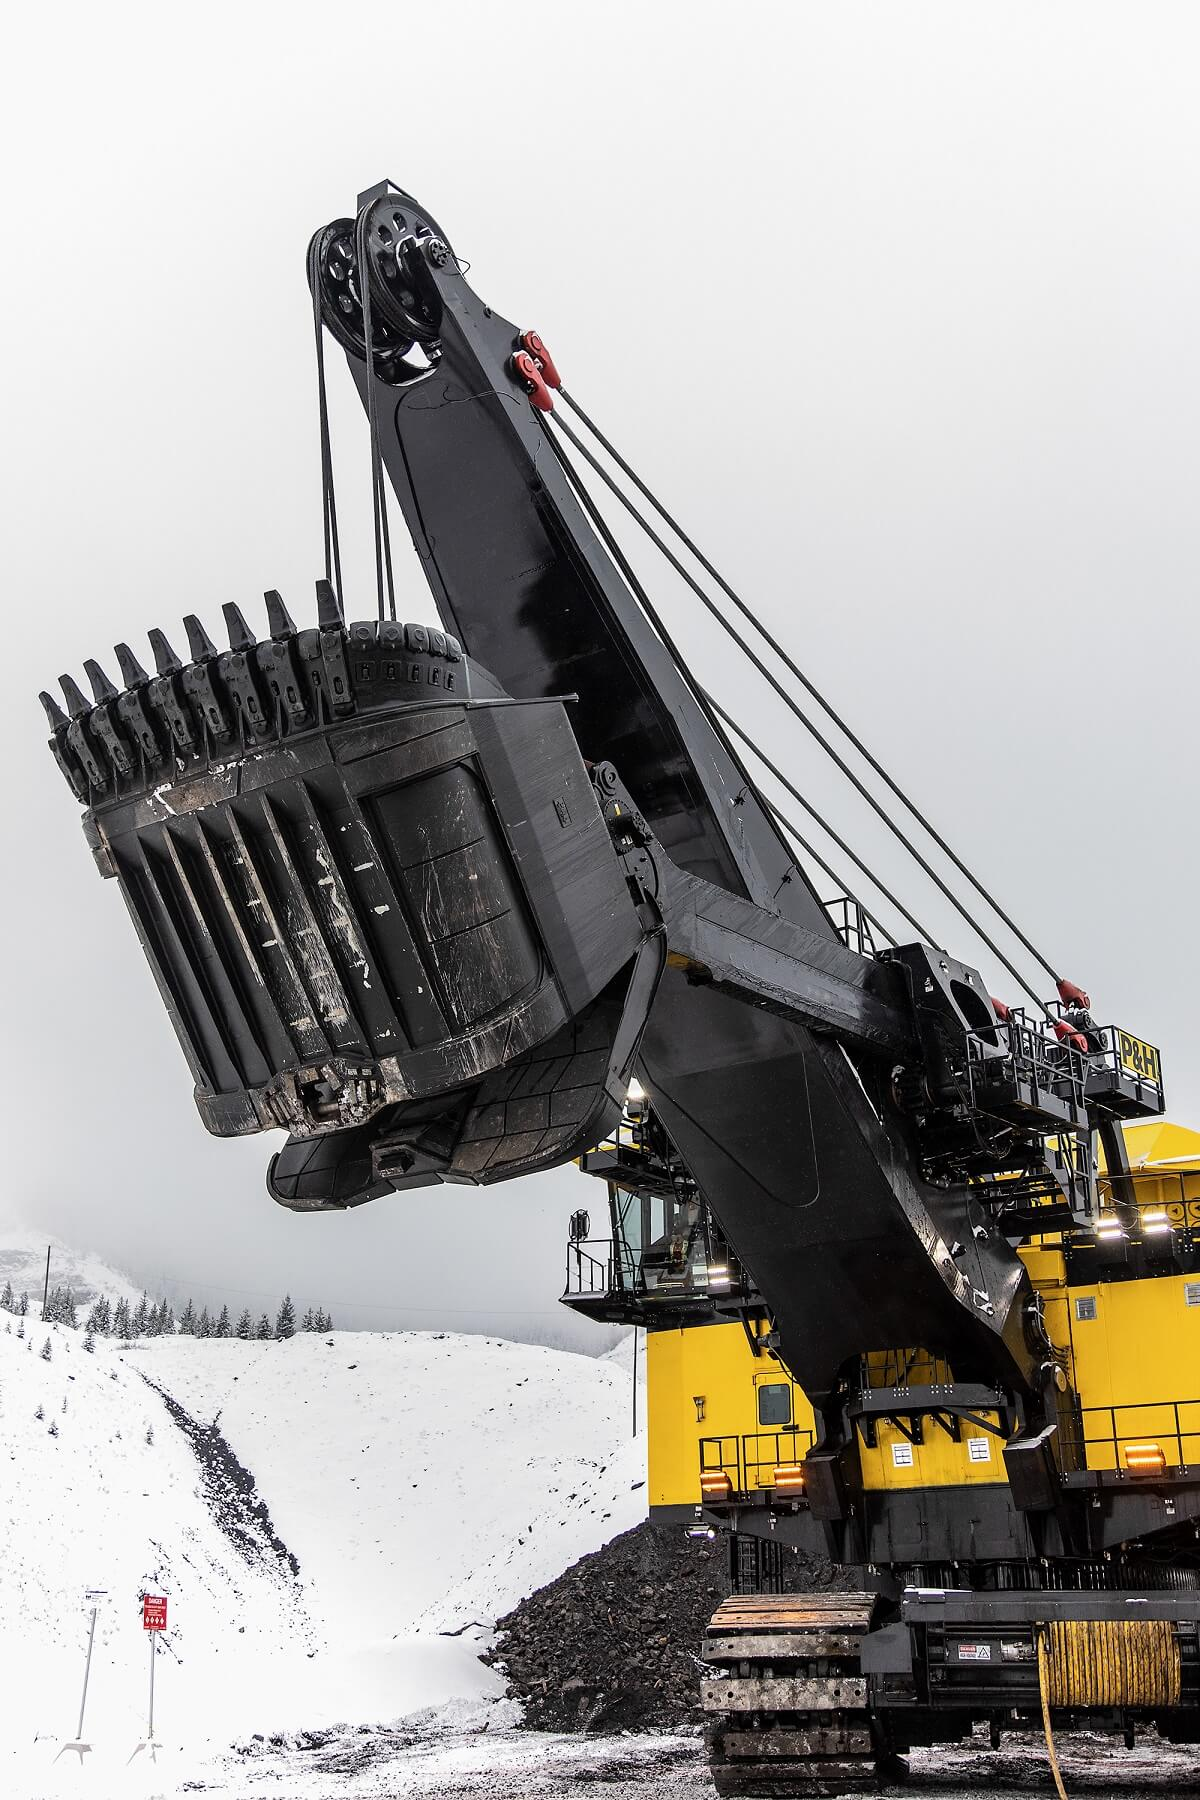 P&H electric rope shovel with TRC dipper series